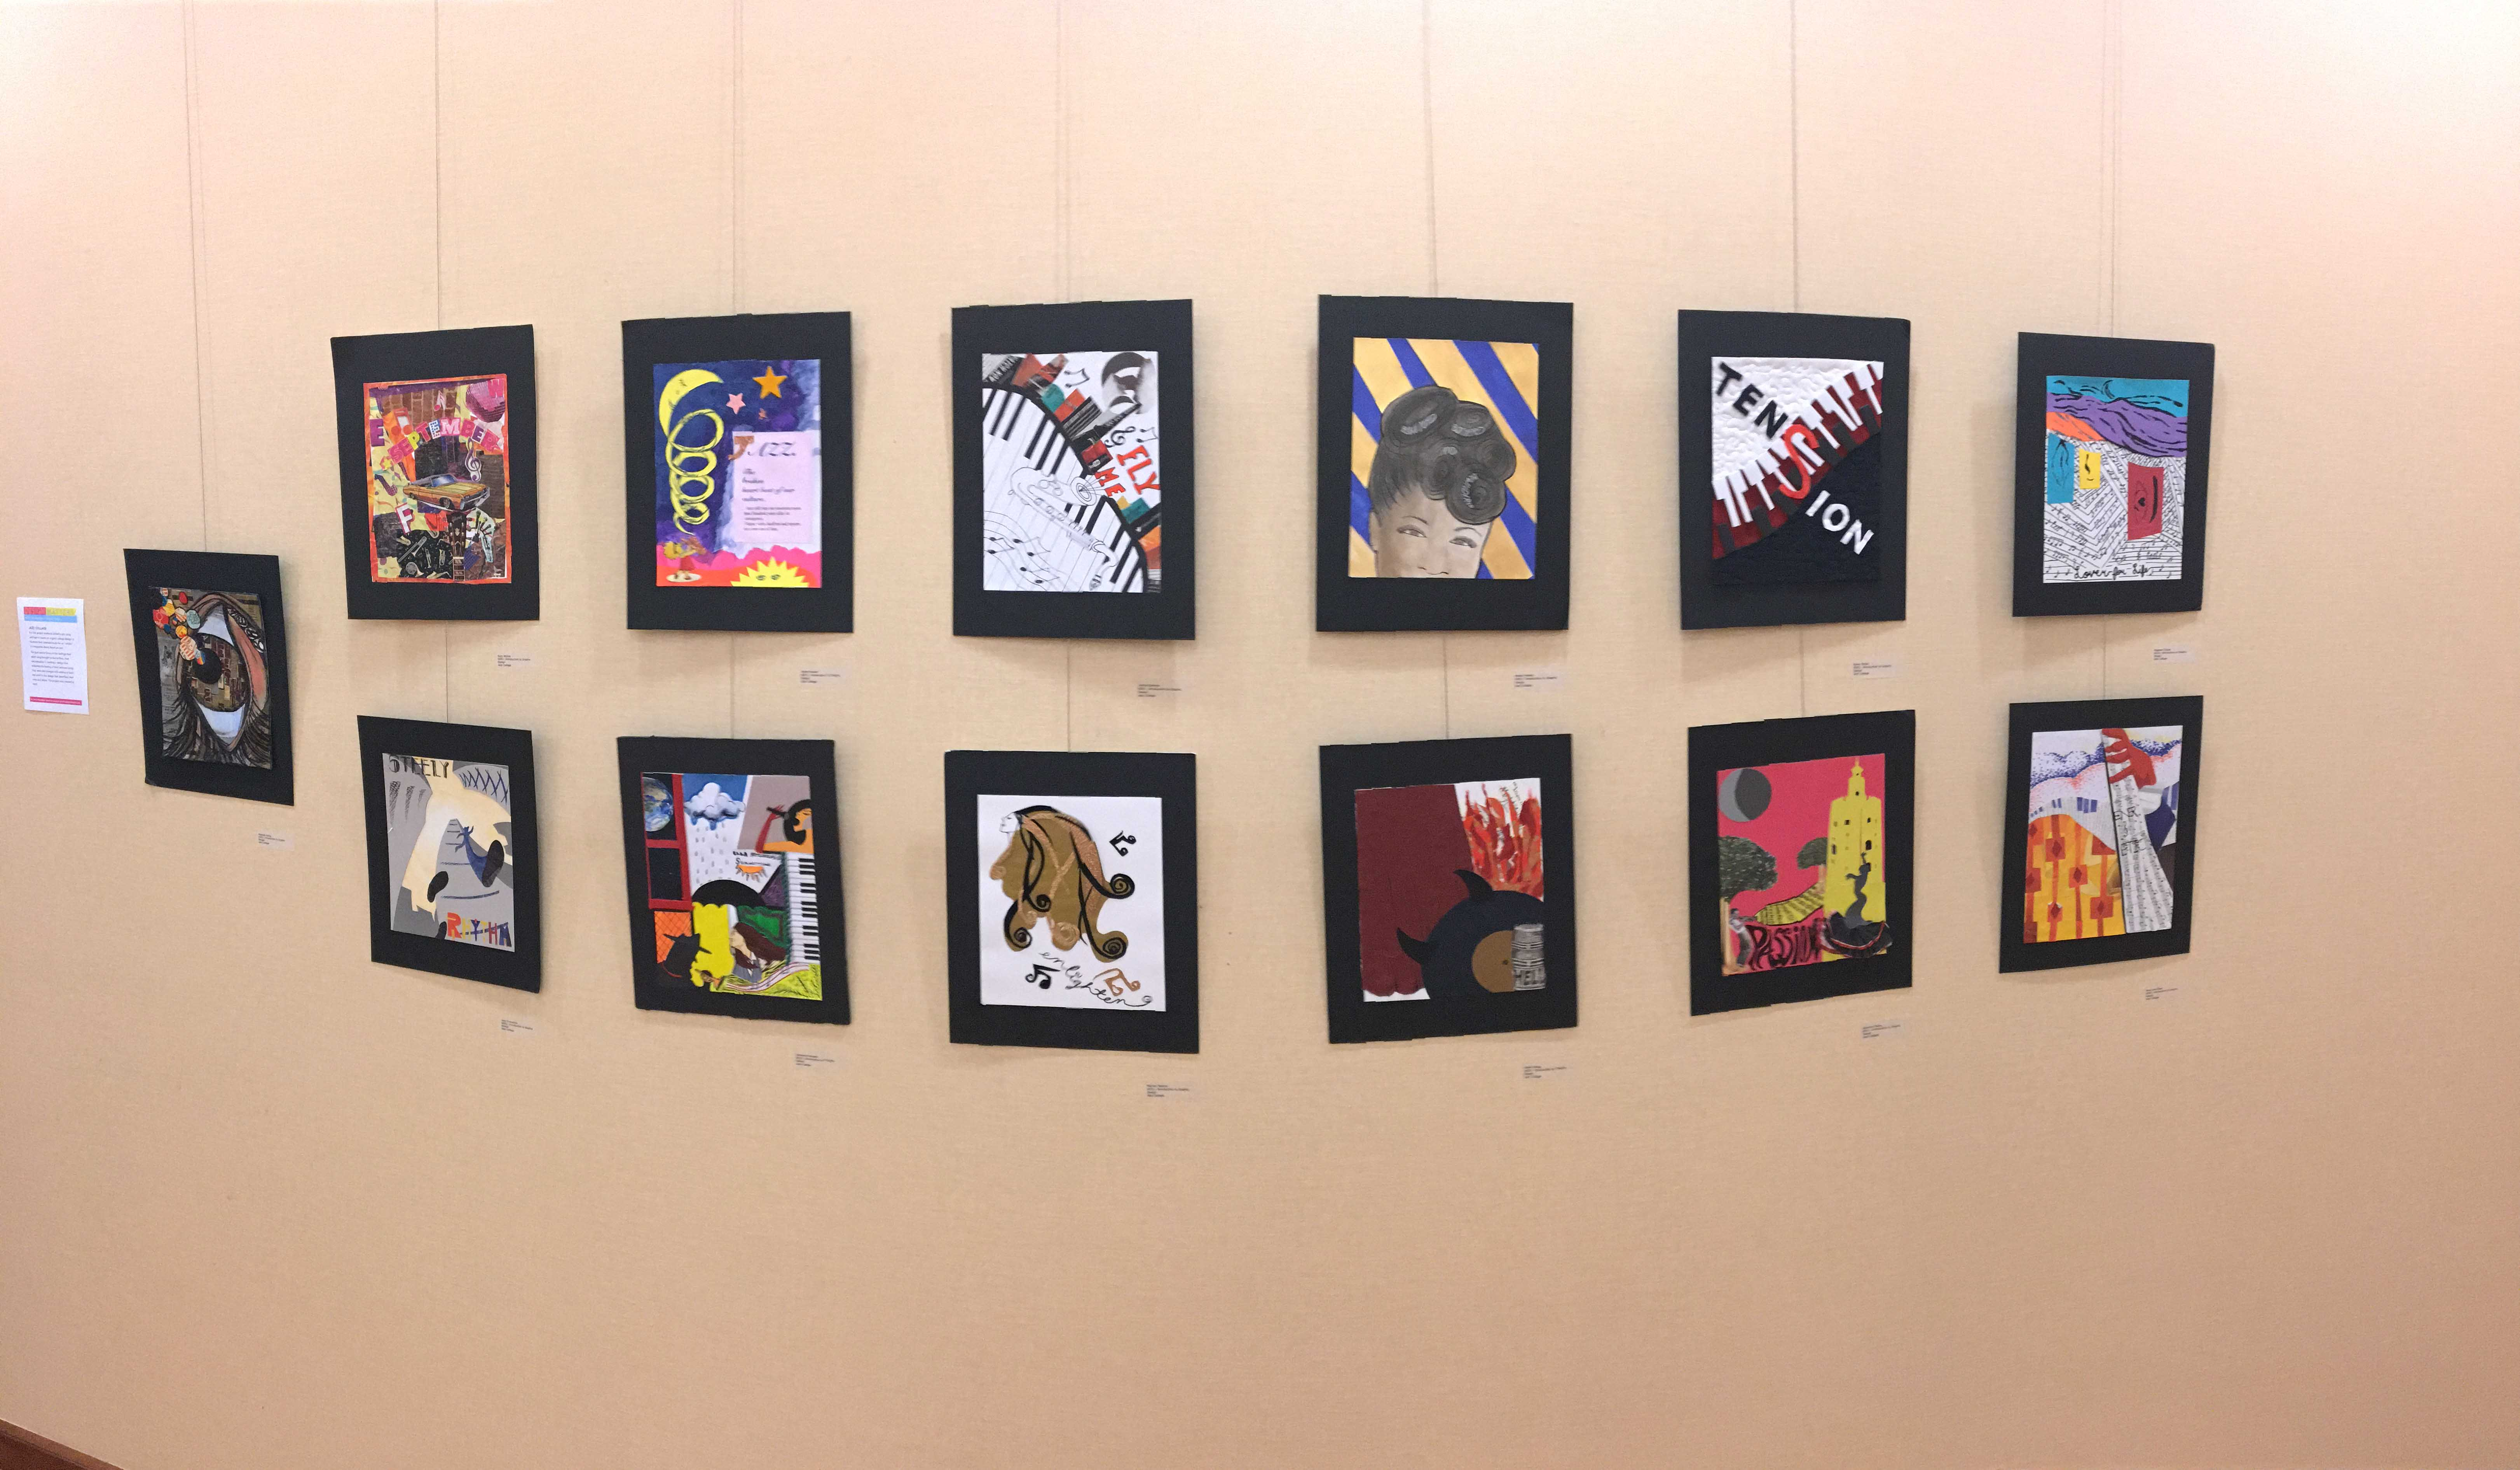 The art show displayed a variety of work across a number of graphic design categories.